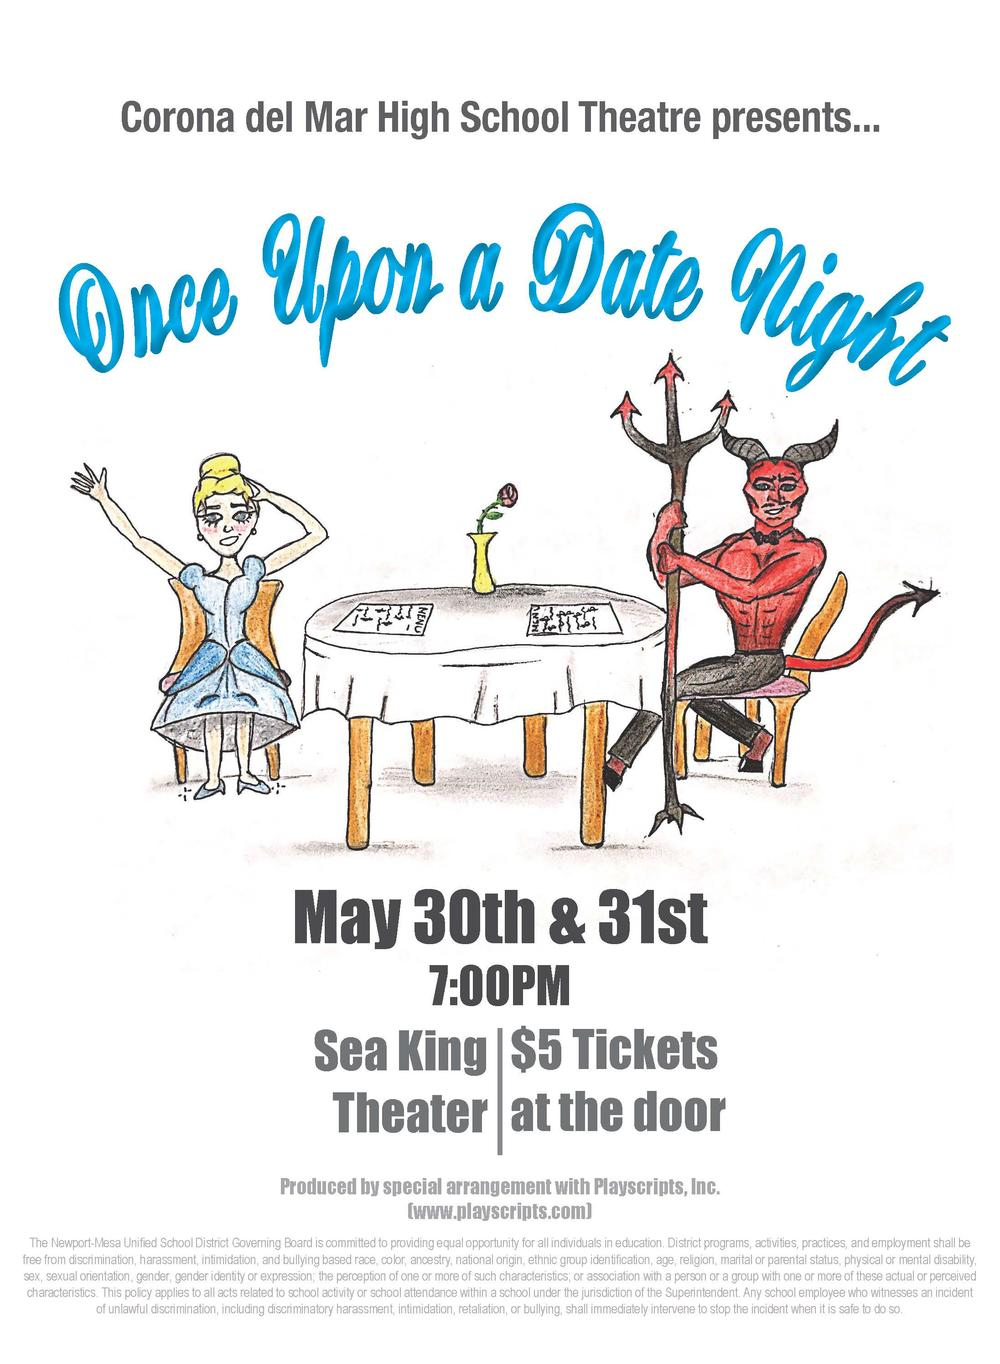 CdMHS Theatre presents...Once Upon a Date Night